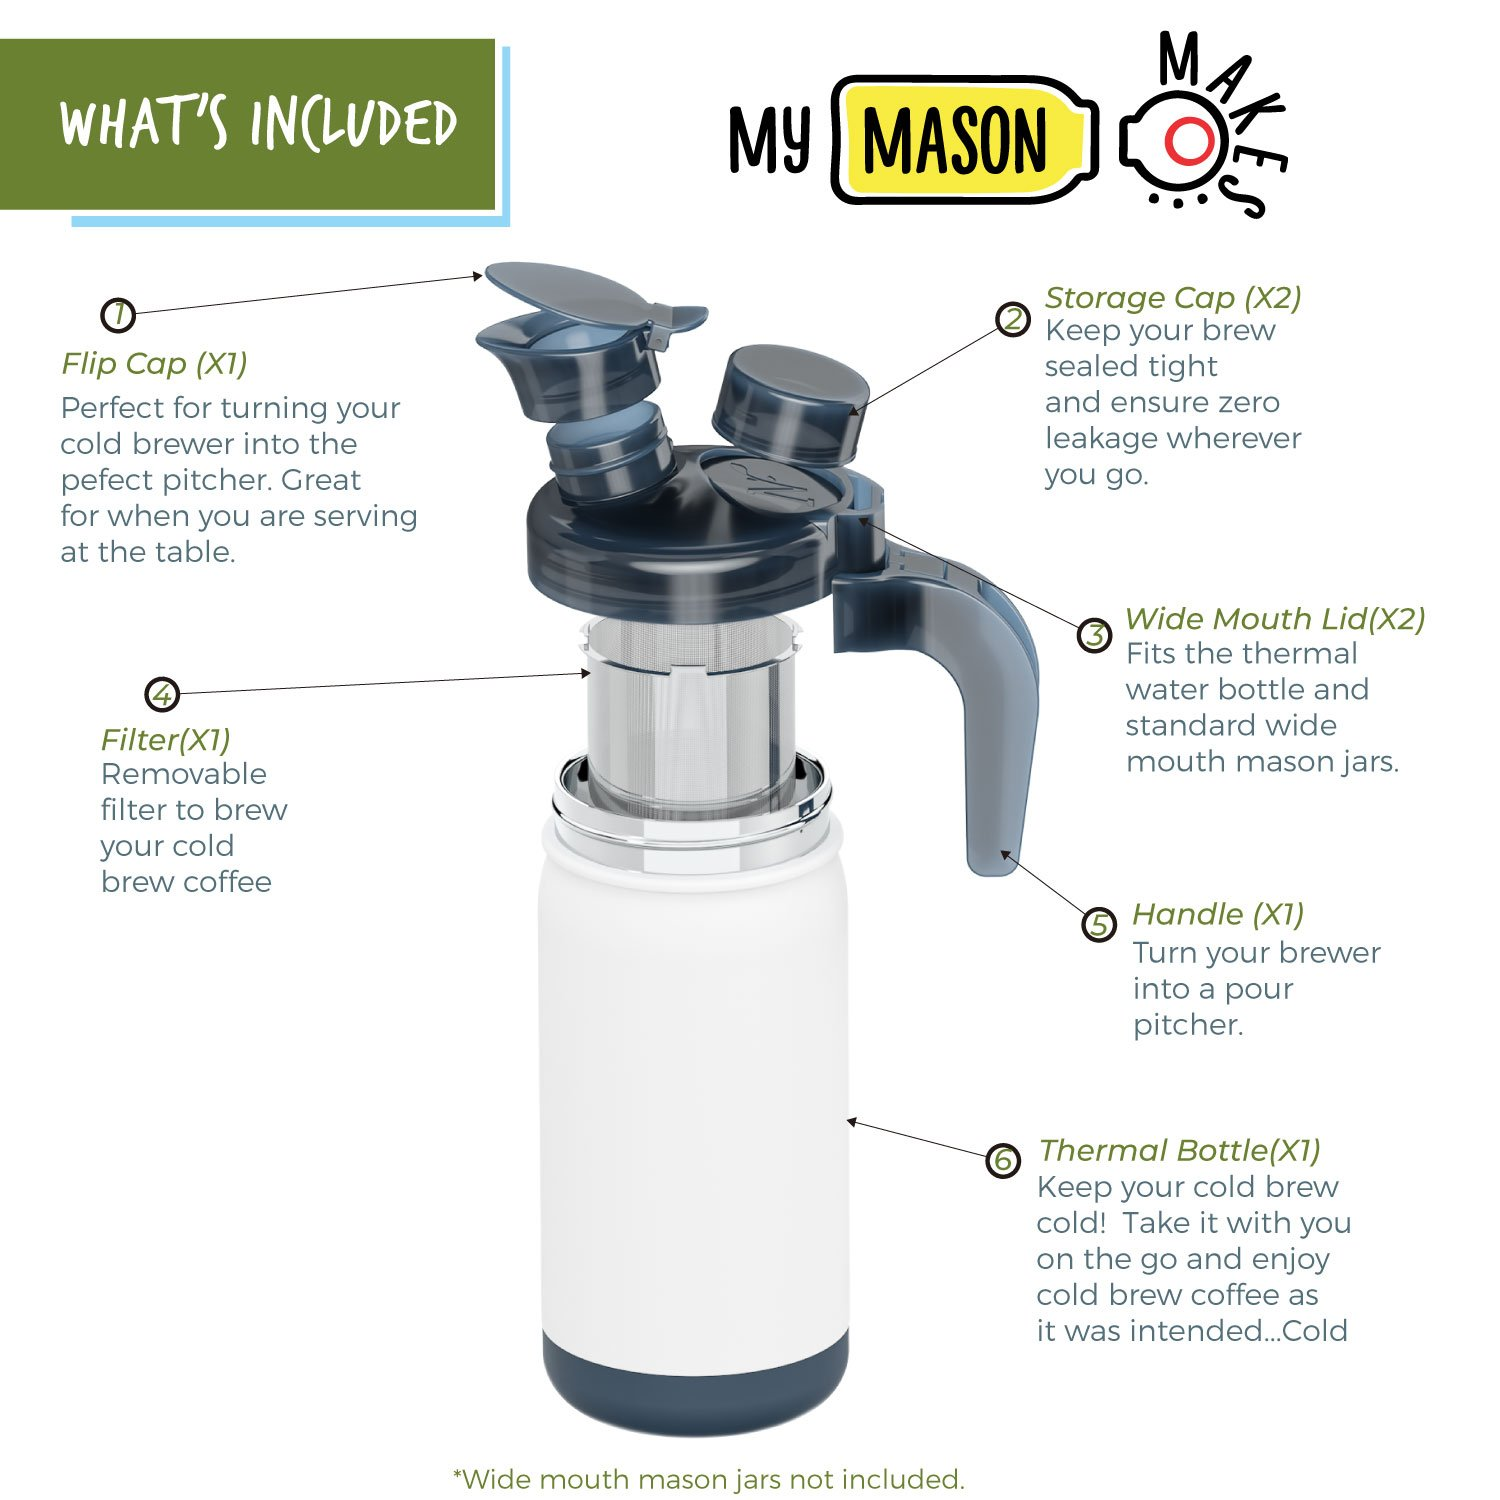 My Mason Makes - Cold Brew Coffee Maker Kit - Make Great Iced Coffee or Tea at Home - Professional Quality System with Insulated Jar to Keep Your Cold Brew Perfectly Cold by Nourished Essentials